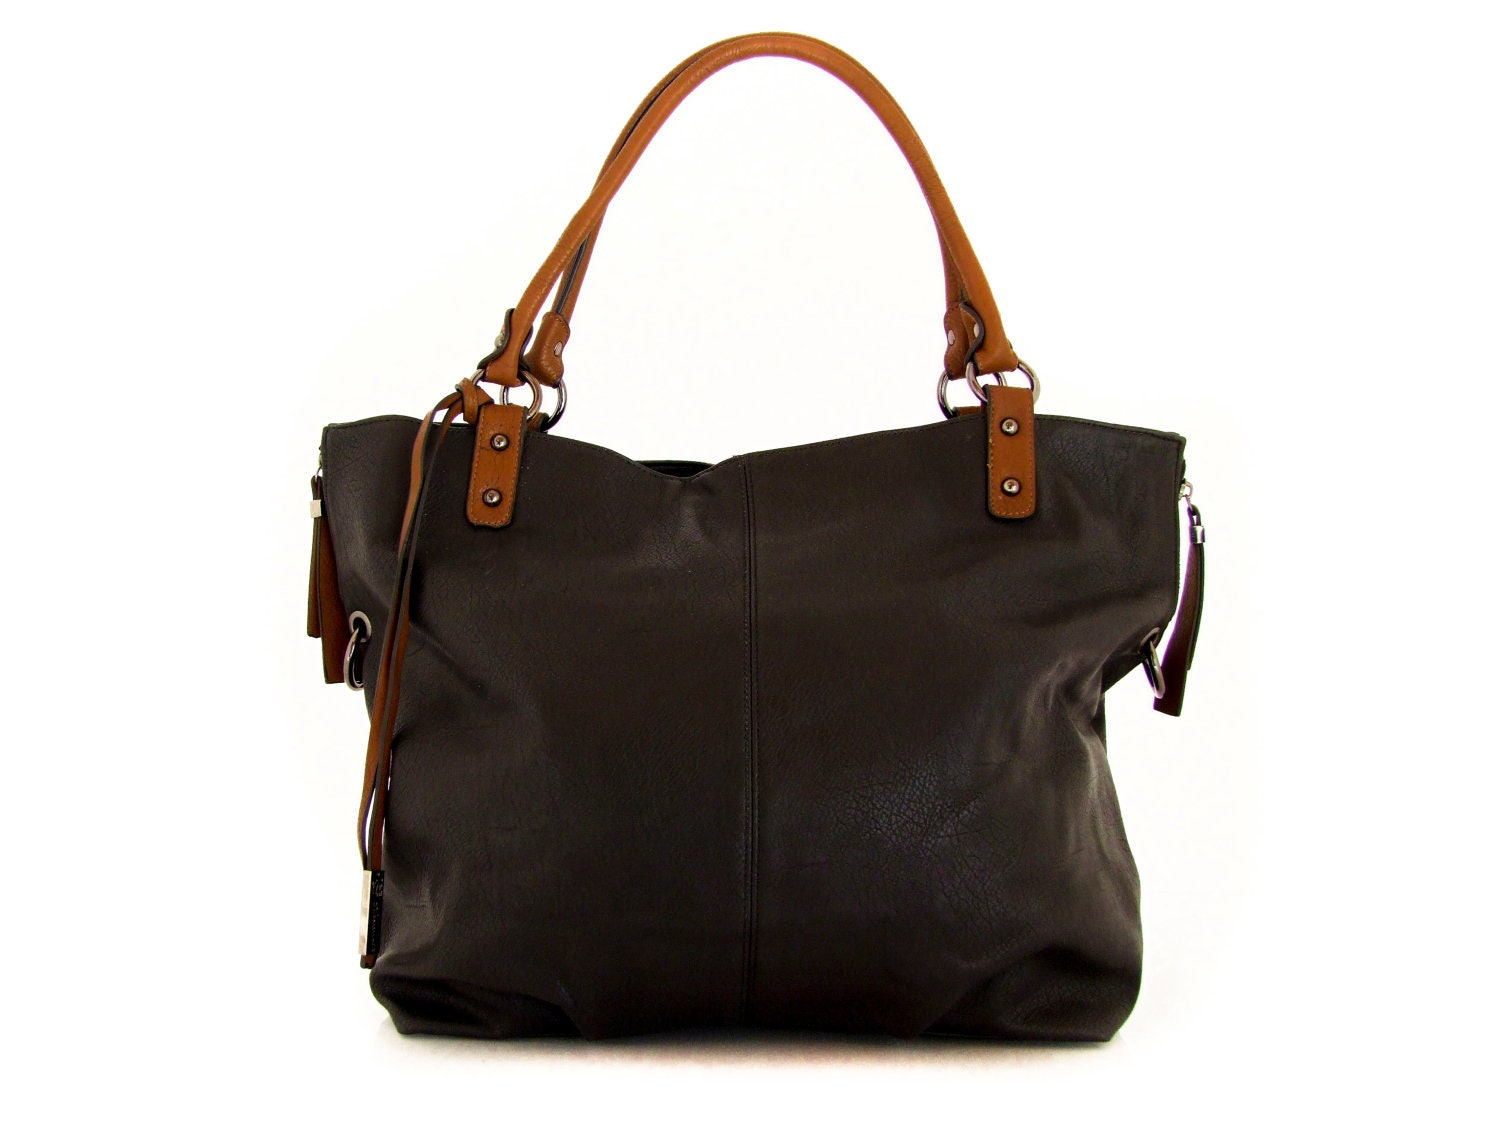 Handmade vegan leather handbag tote black -  the Maeve - 20%  launch discount - TRACCEbags